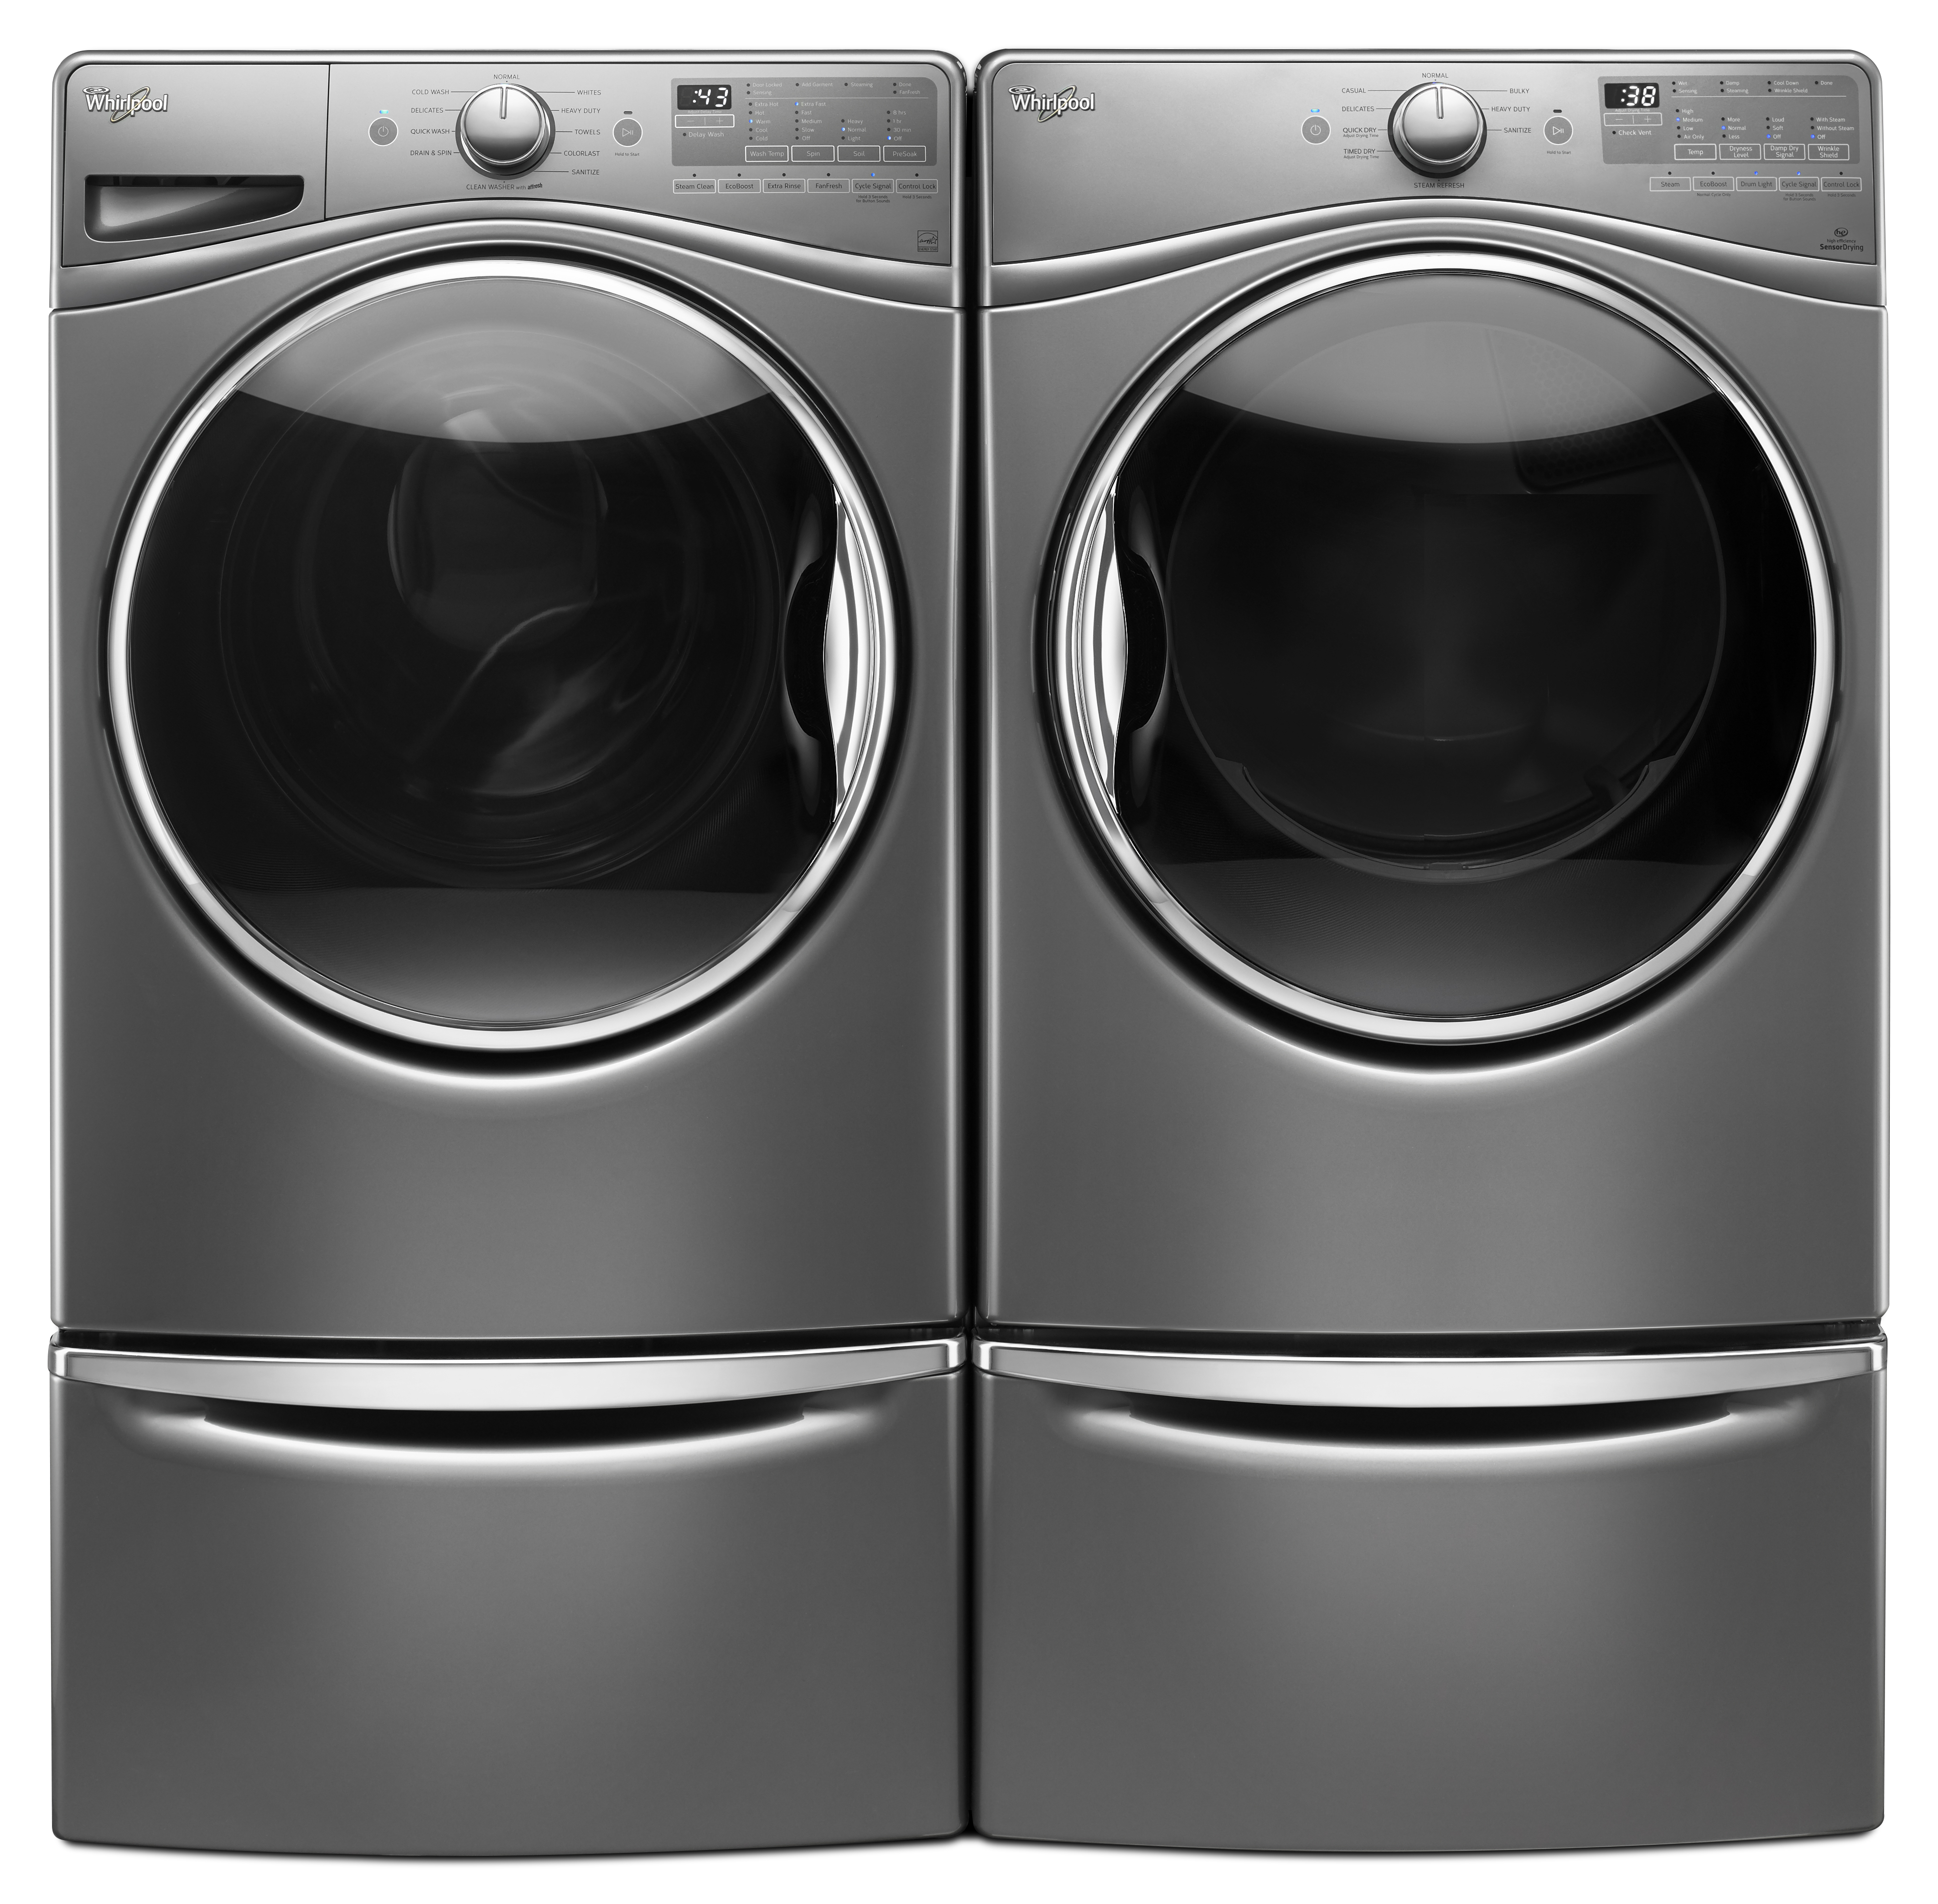 Whirlpool WFW90HEFC 4.5 cu. ft. Front Load Washer w/12-Hour FanFresh® Option - Chrome Shadow